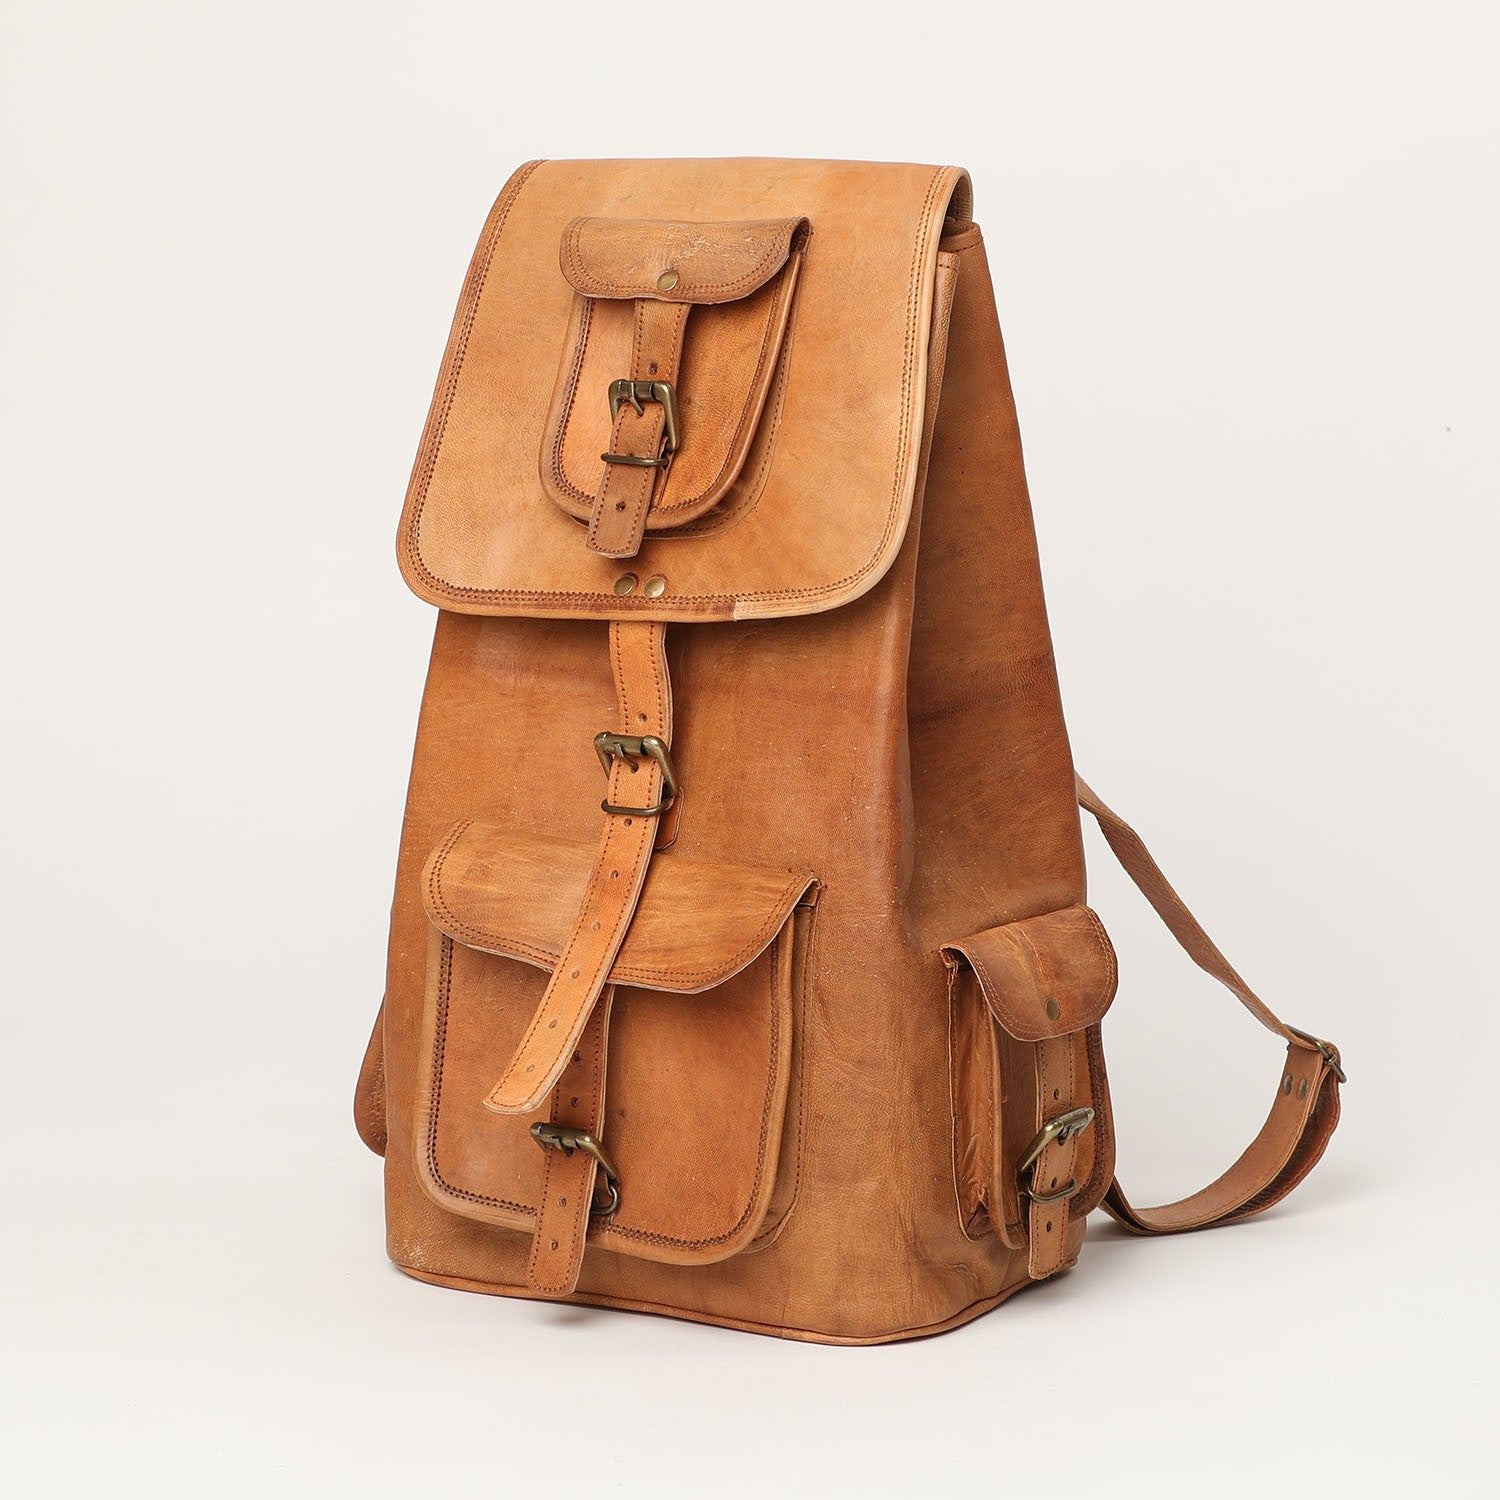 Backpack large - leather bags